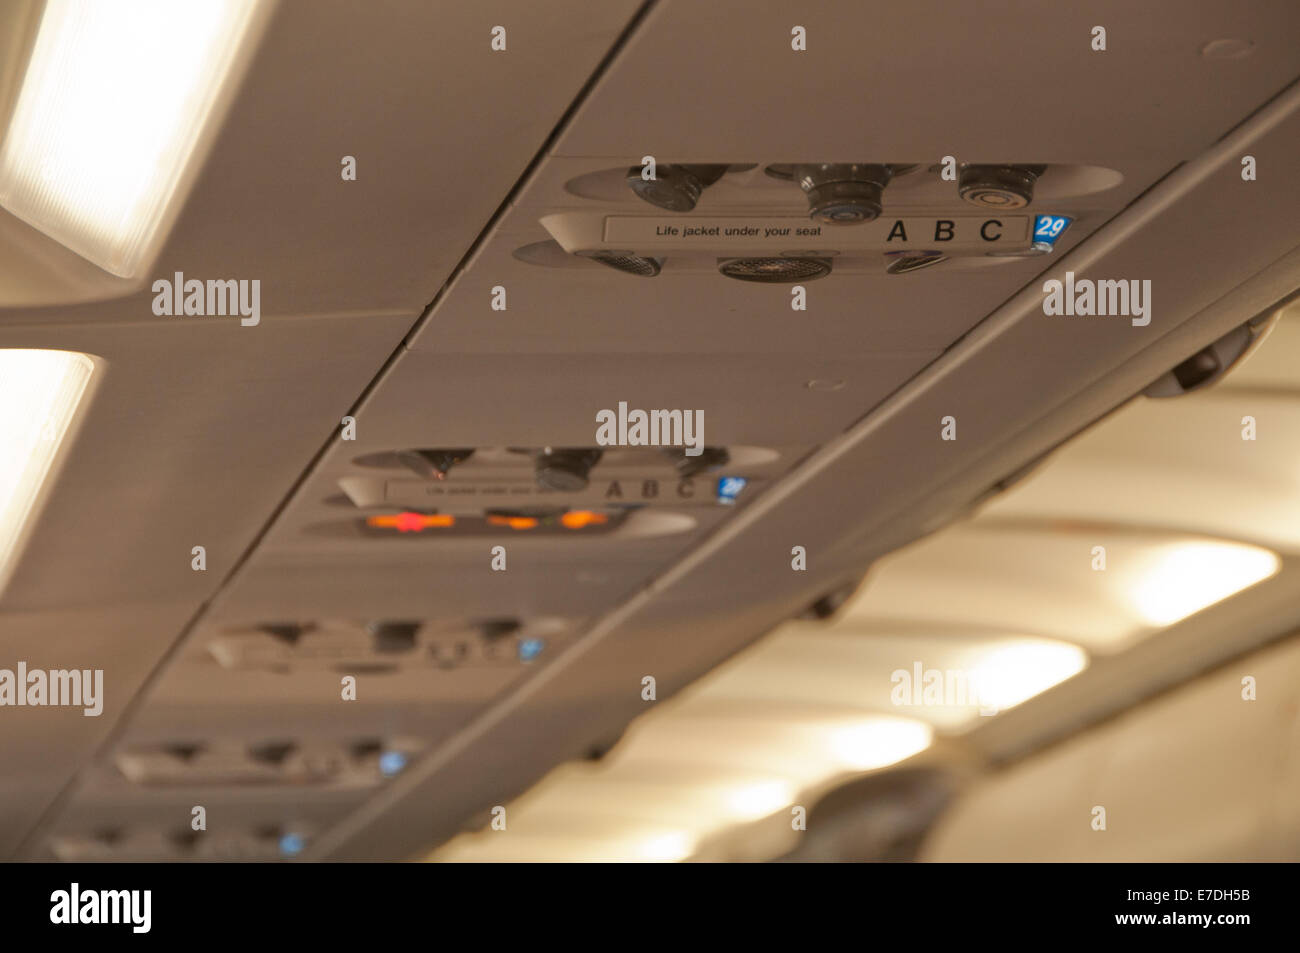 Overhead Passenger Control Panel on Commercial Airline Plane - Stock Image